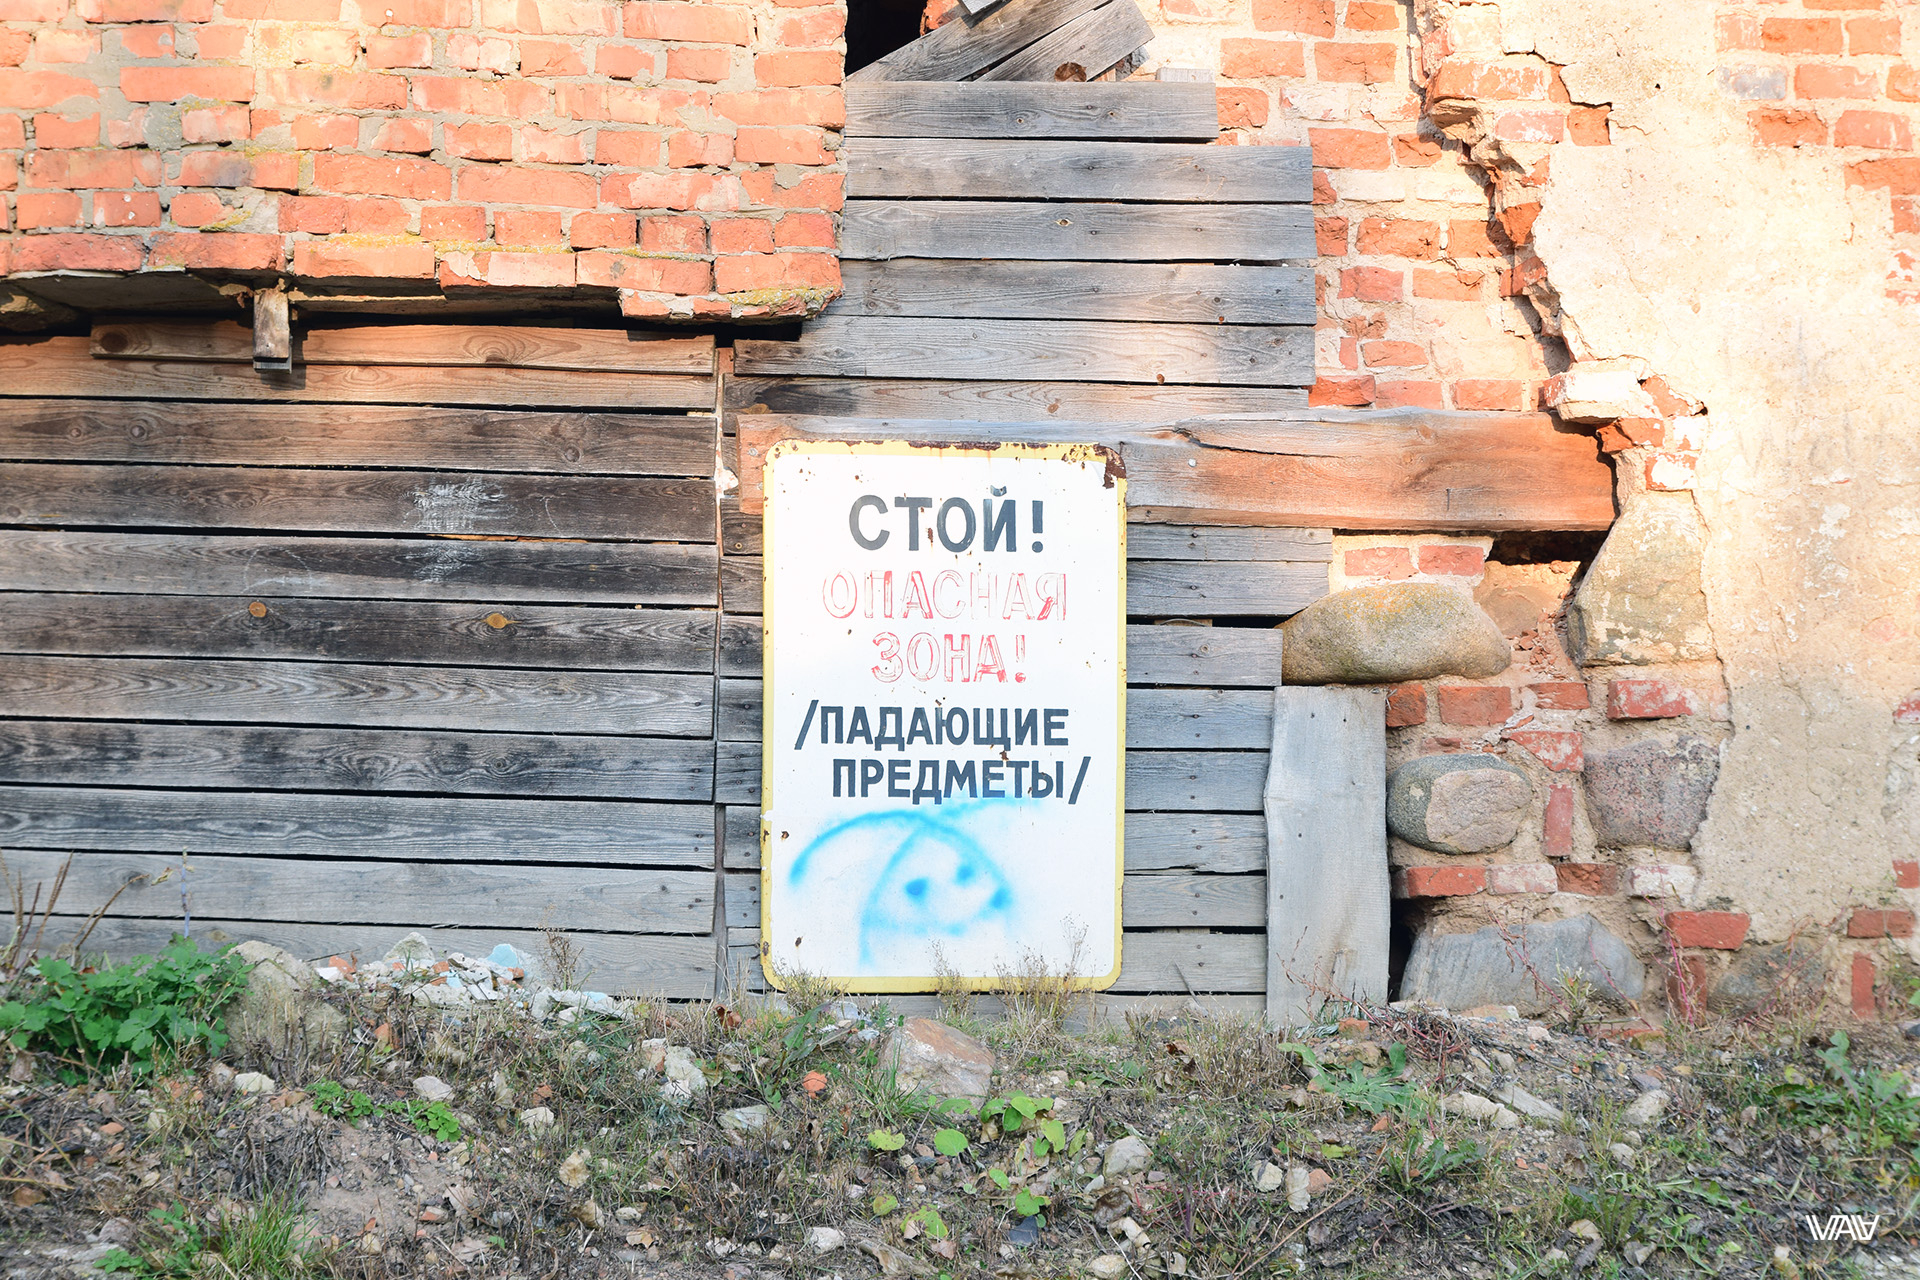 Never forget about a brick that can overtake you or your loved ones at any time. Sobor Rozhdestva Presvyatoy Bogoroditsy, Glubokoe city, Vitebsk region, Belarus